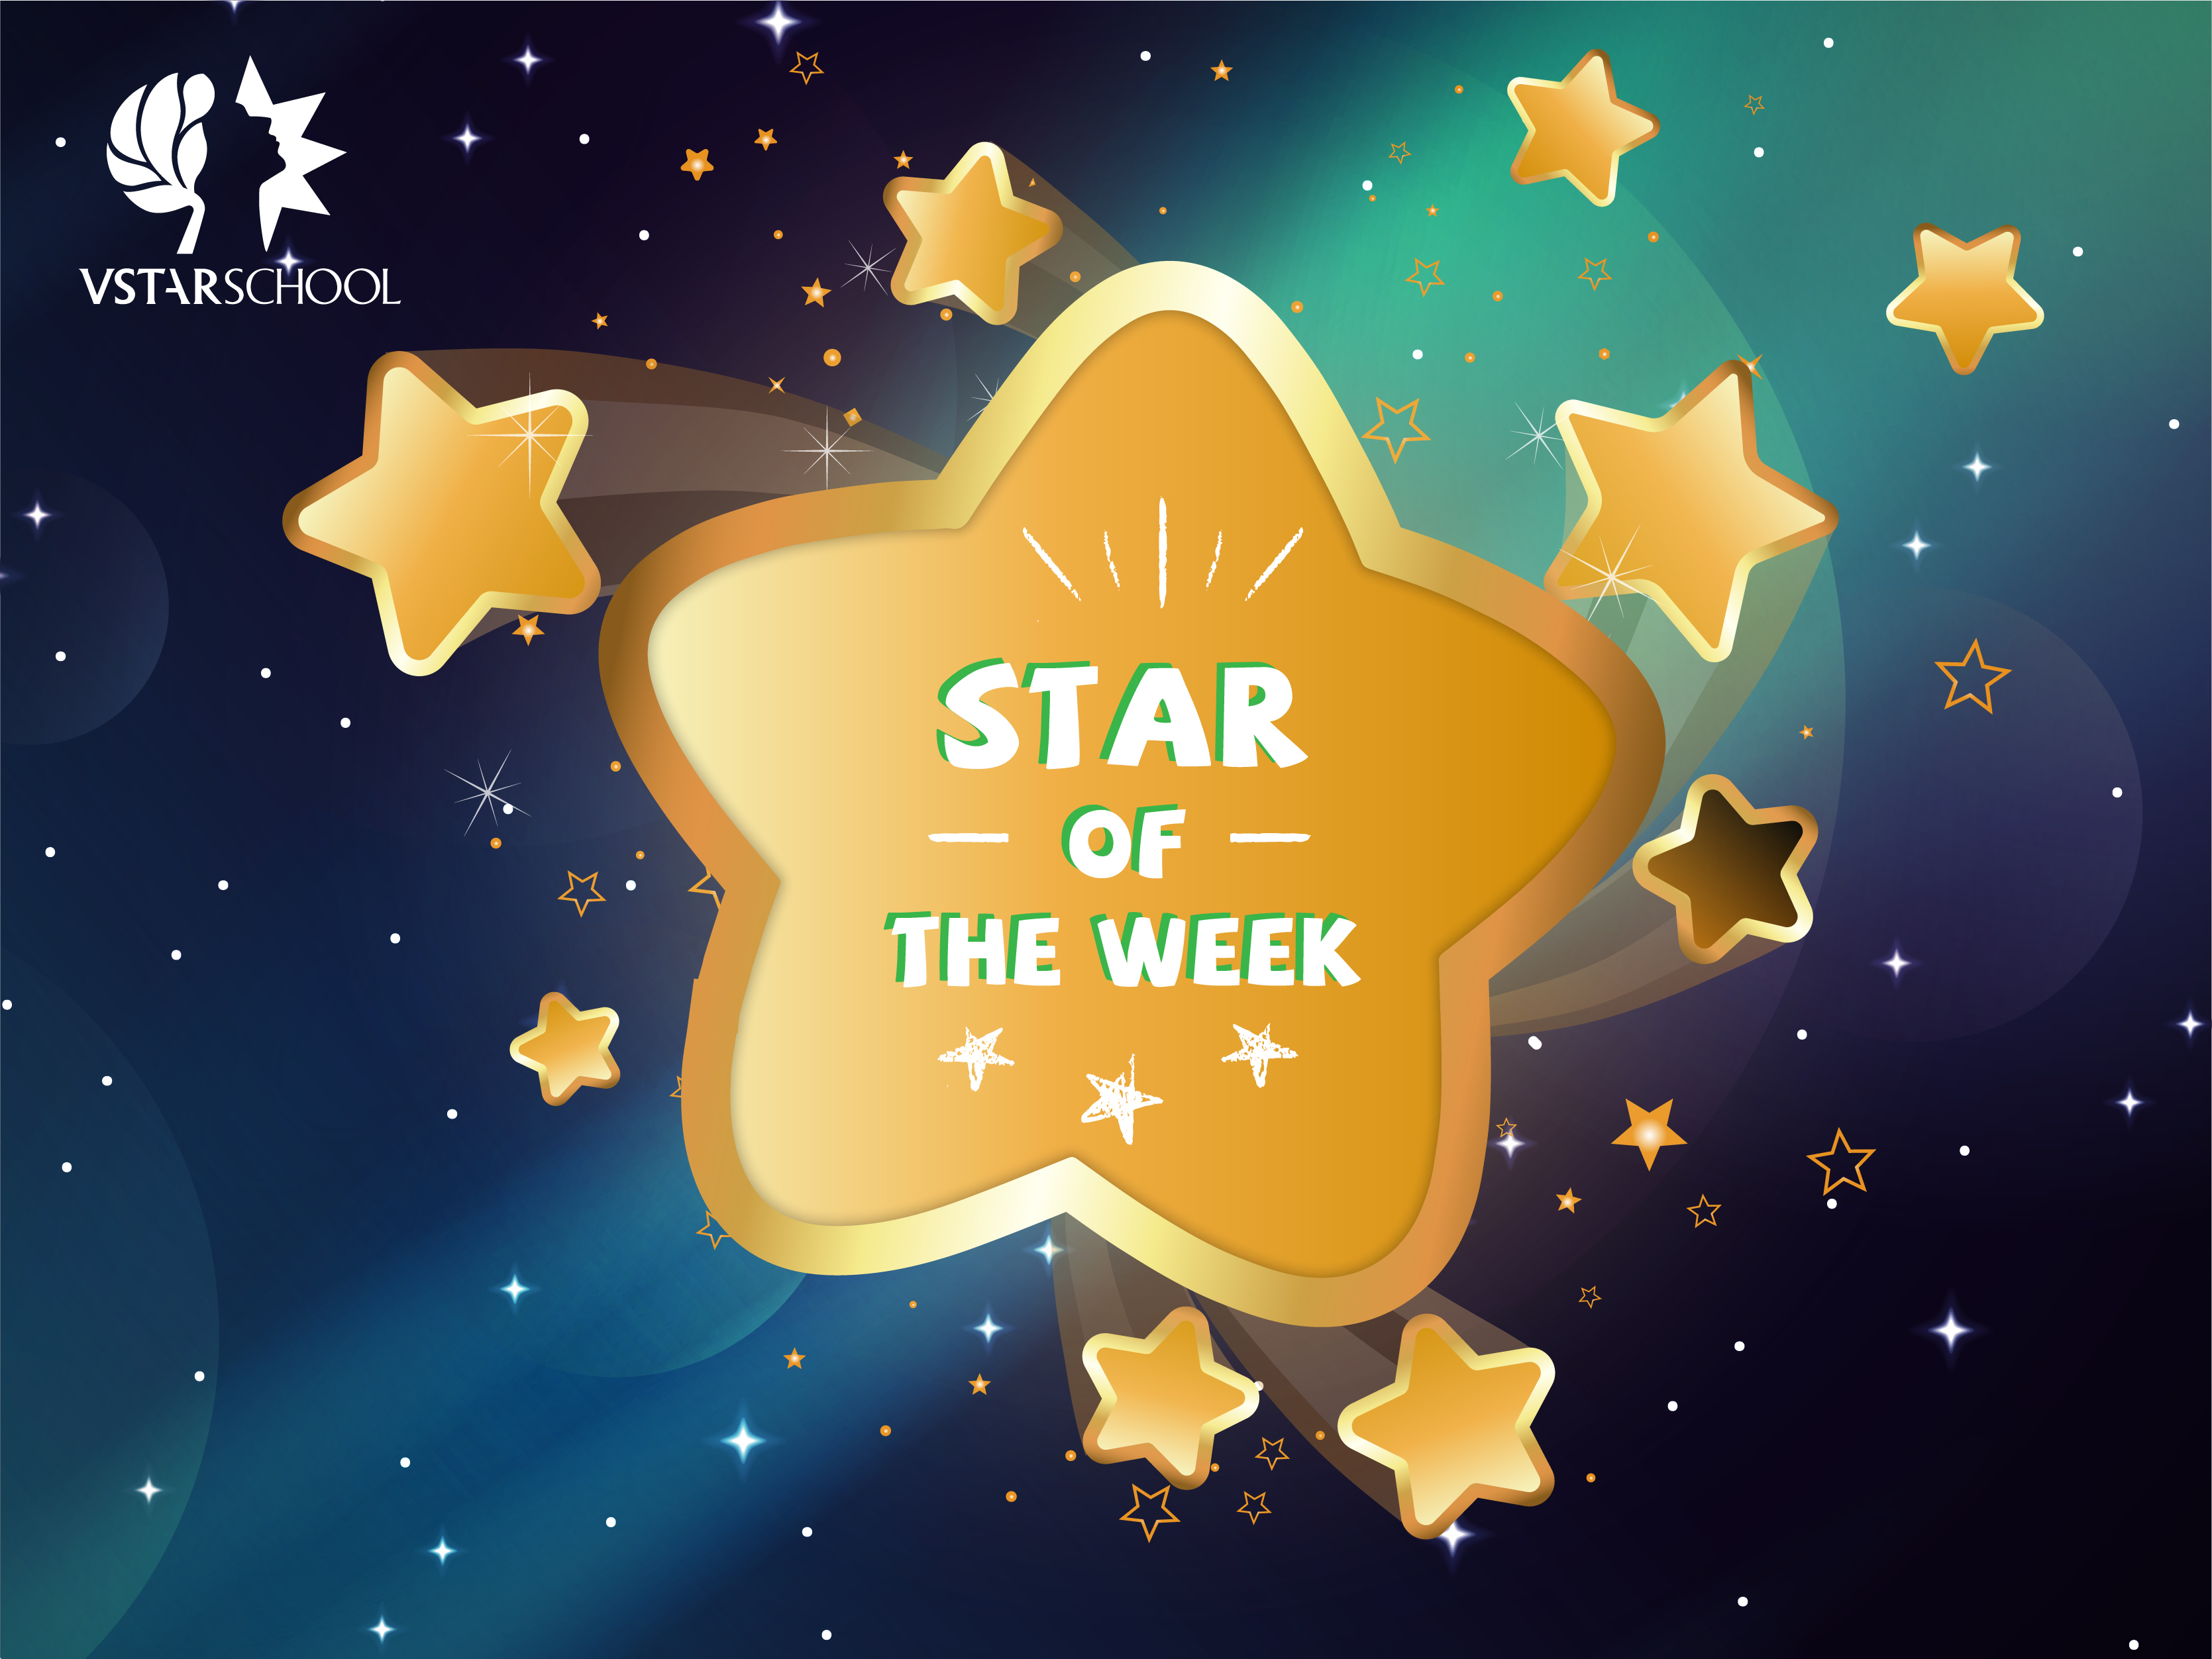 STAR OF THE WEEK TUẦN 3 - 10/2018